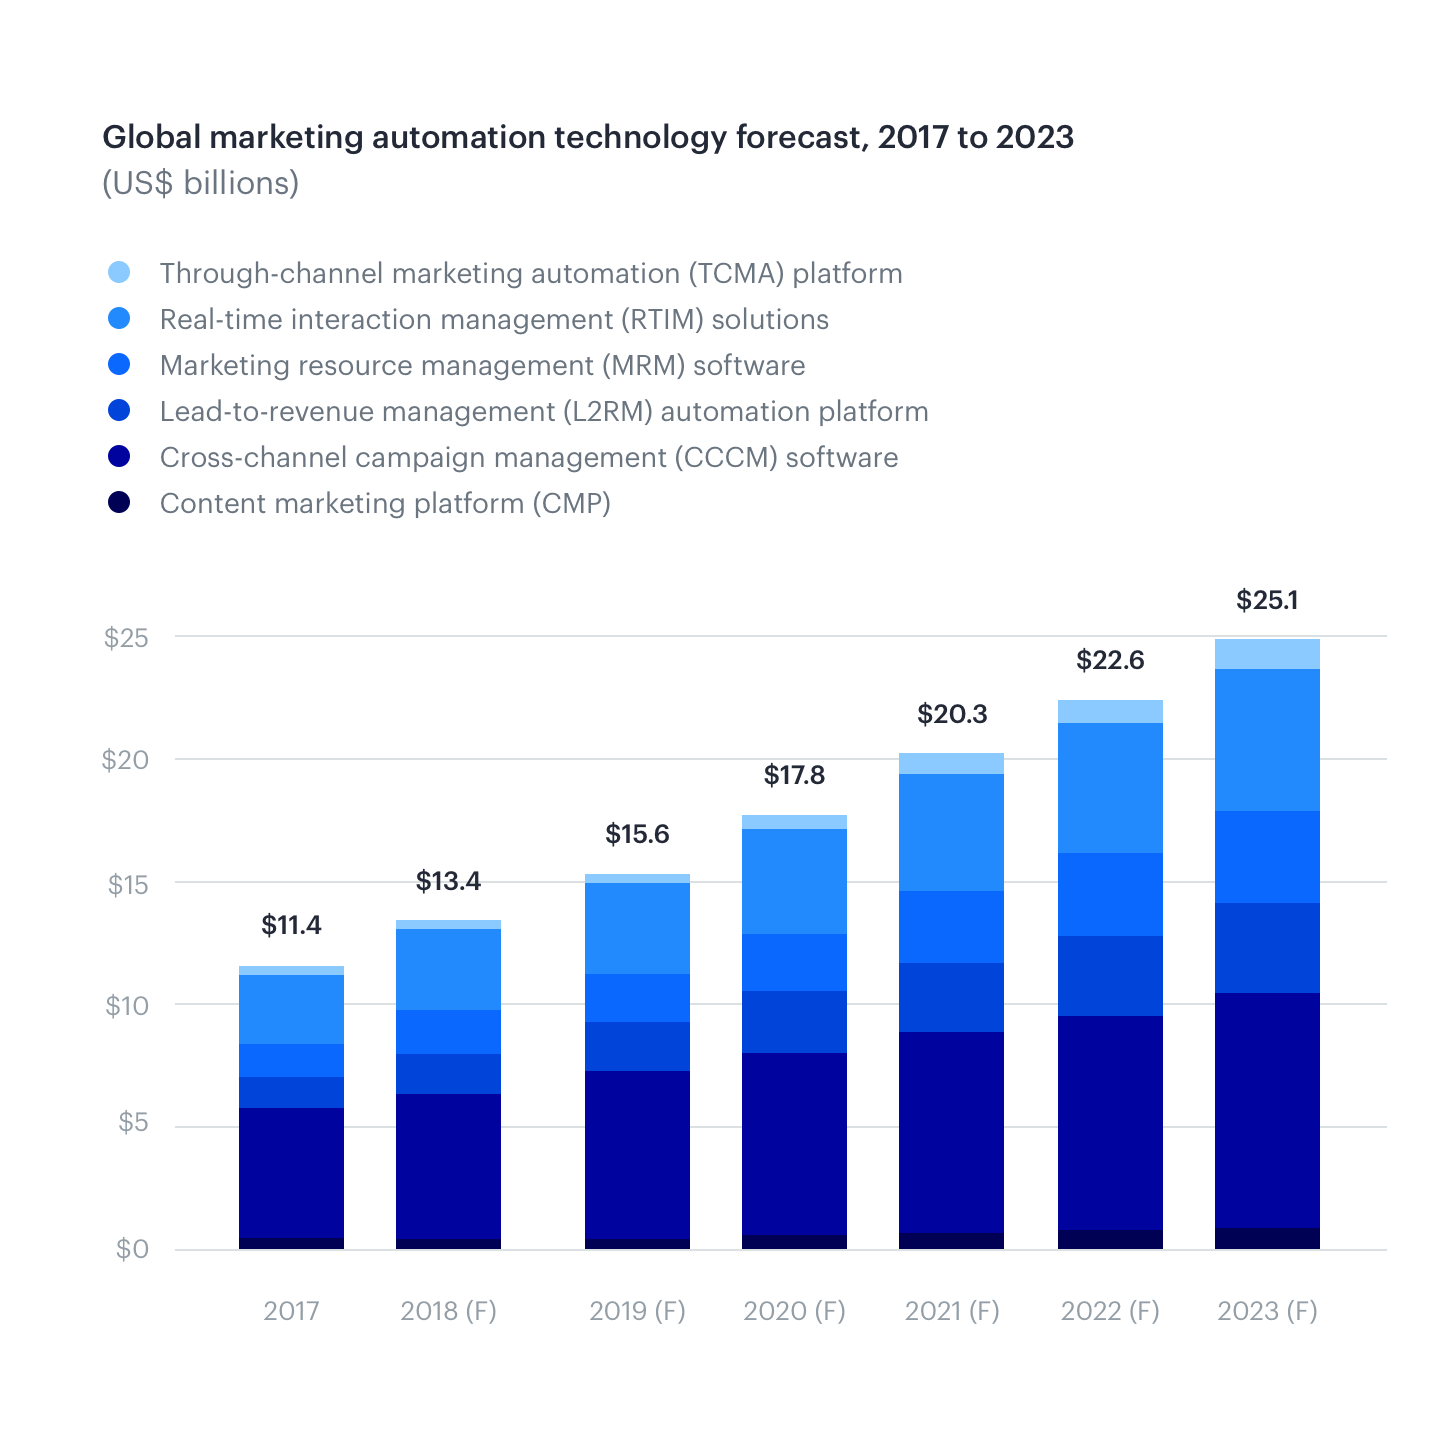 Global marketing technologies forecast from 2017 to 2023 - chart